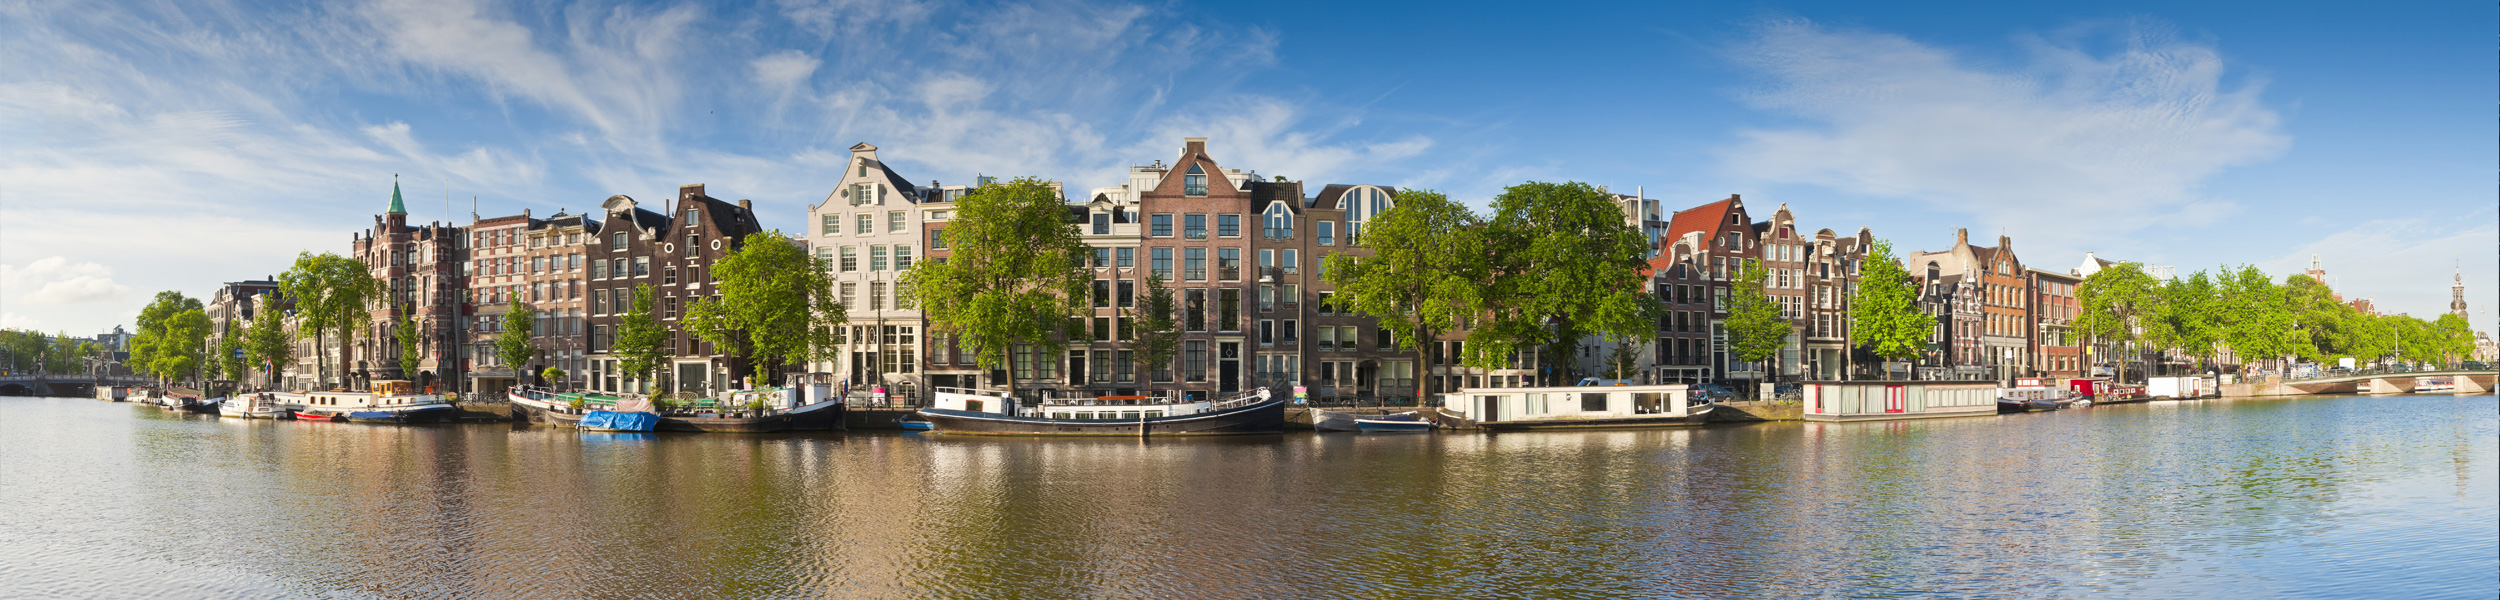 Senior Software Engineer in Test Amsterdam Area, The Netherlands